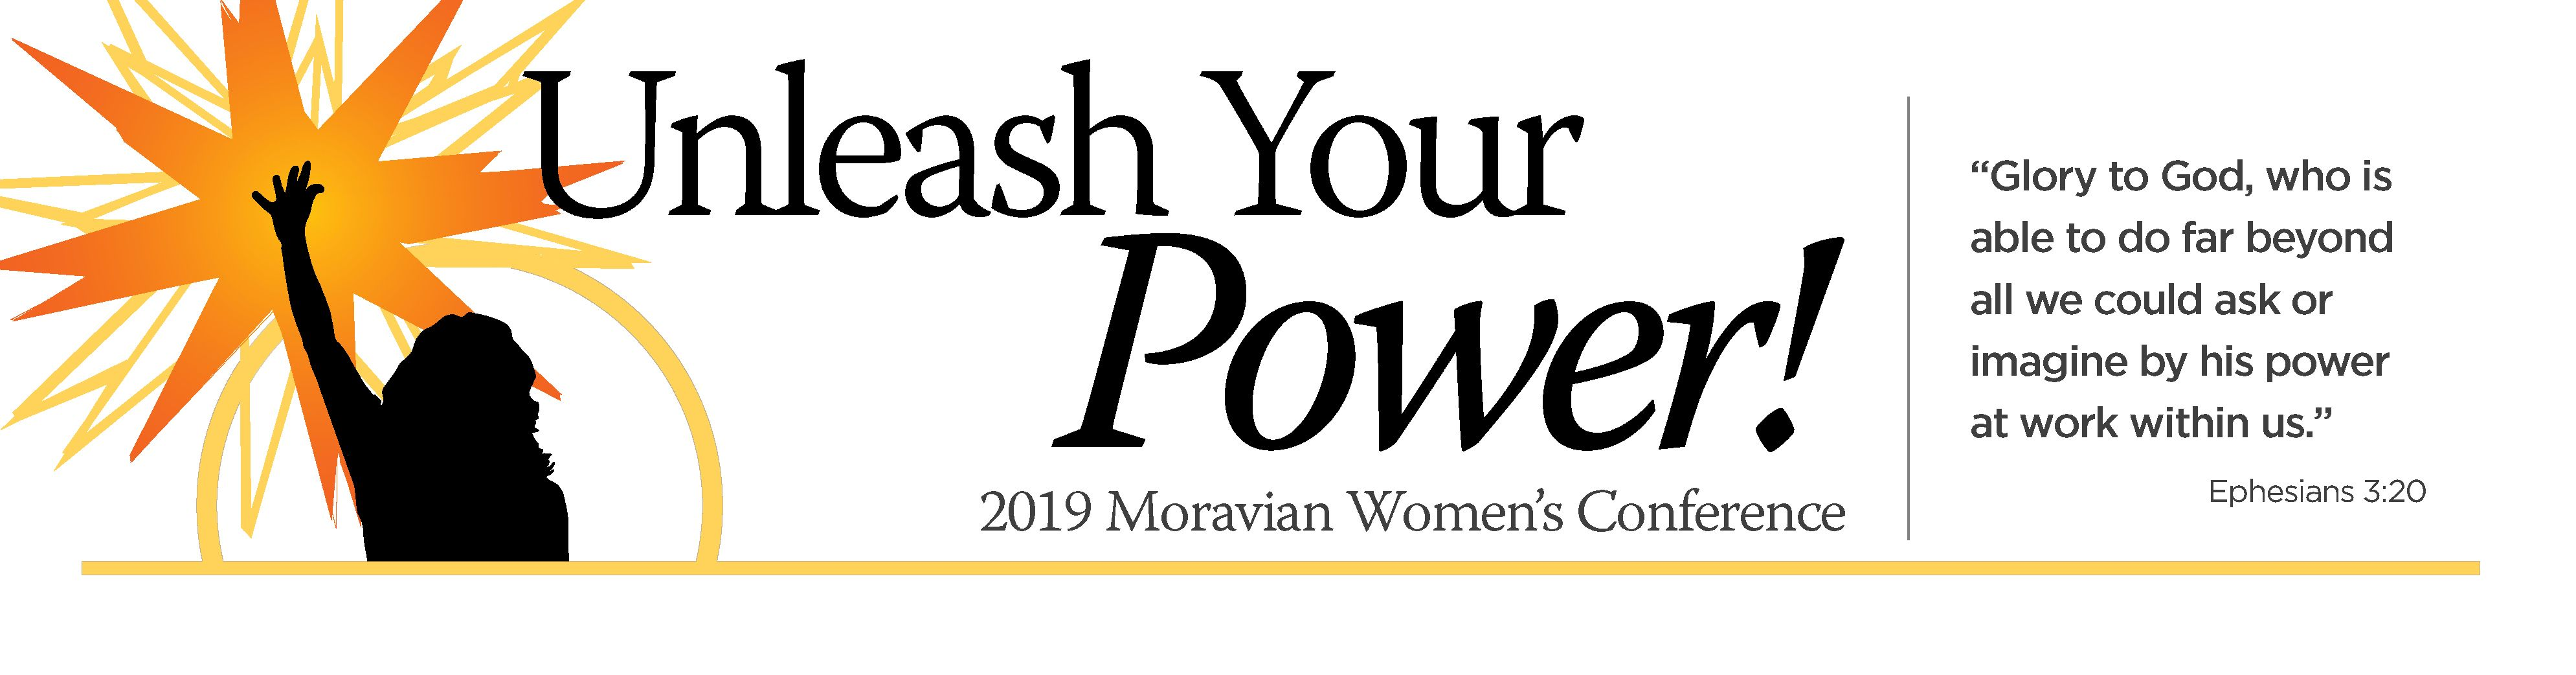 Moravian Womens Conference